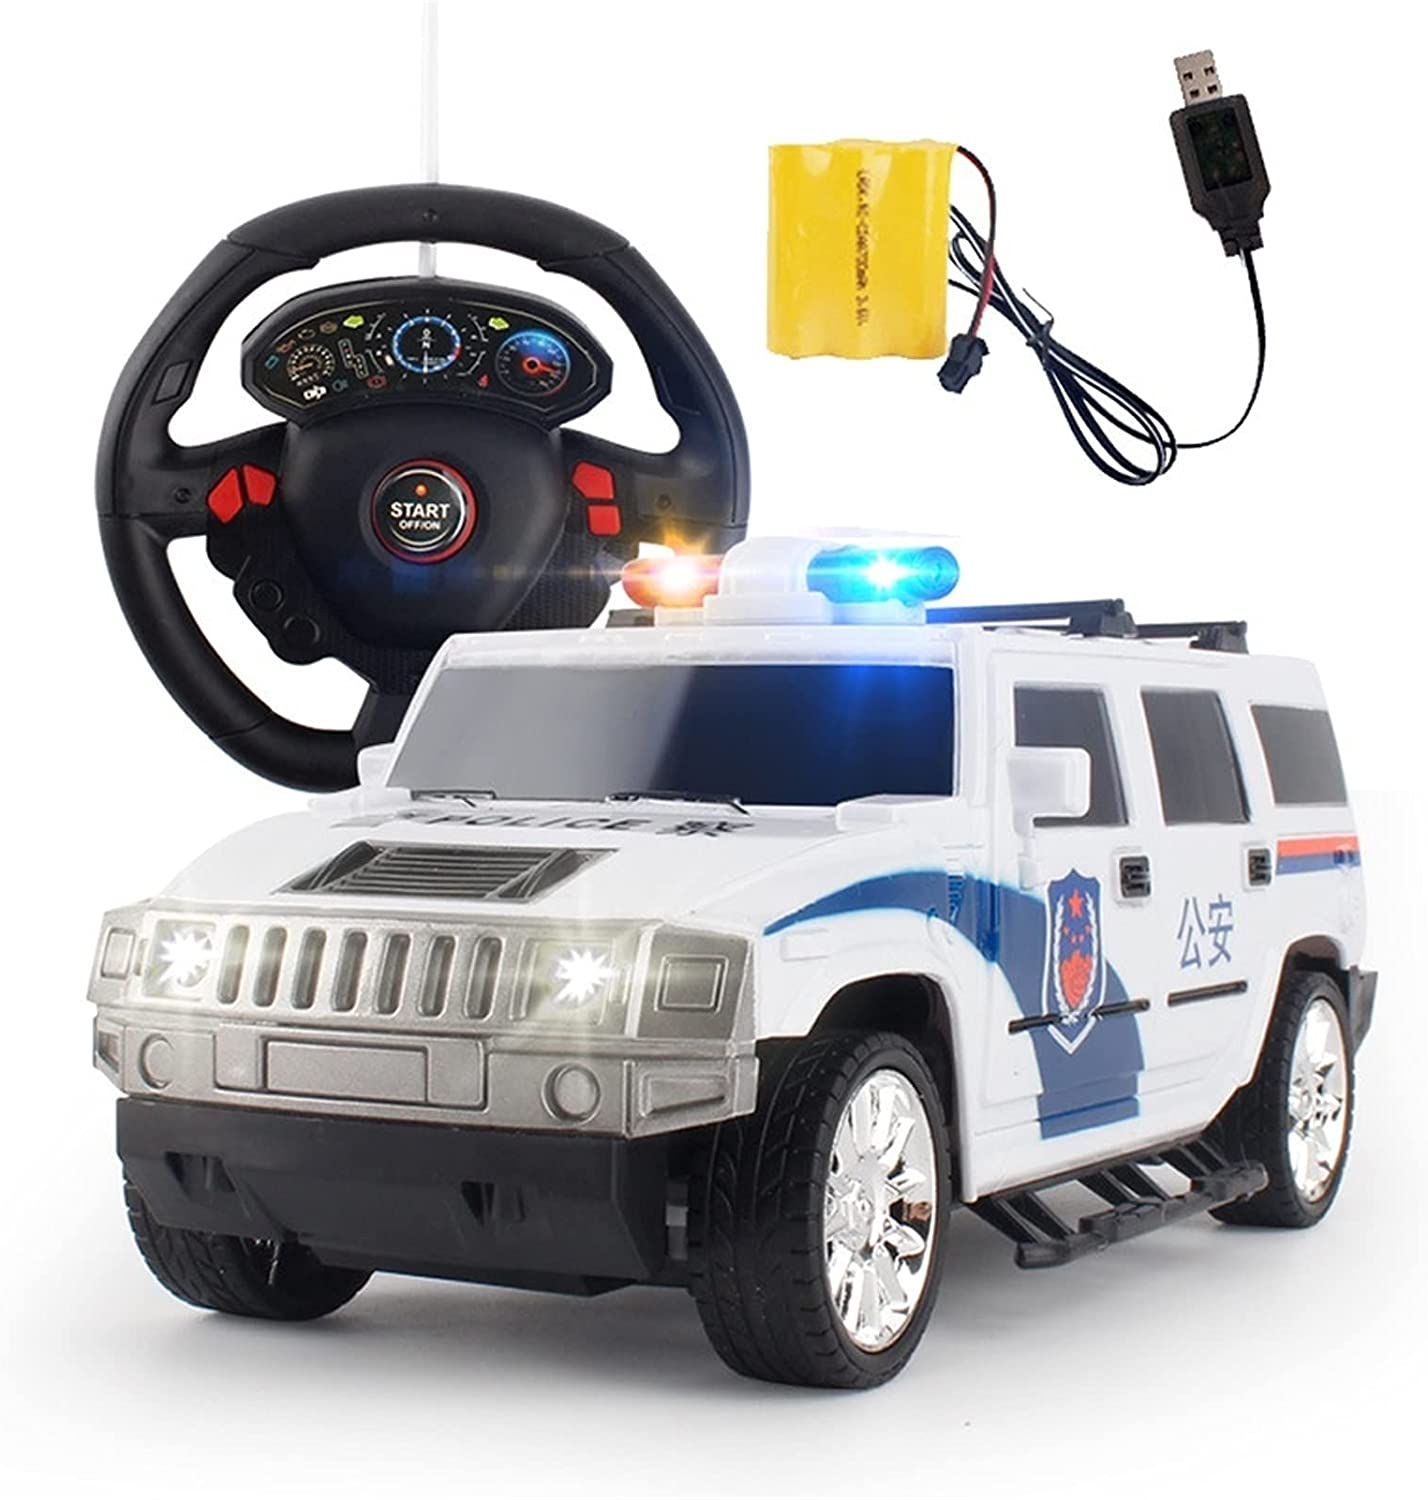 UimimiU Remote Control Large discharge sale Car 4WD Mons Max 81% OFF Rock Electric Alloy Big-Foot